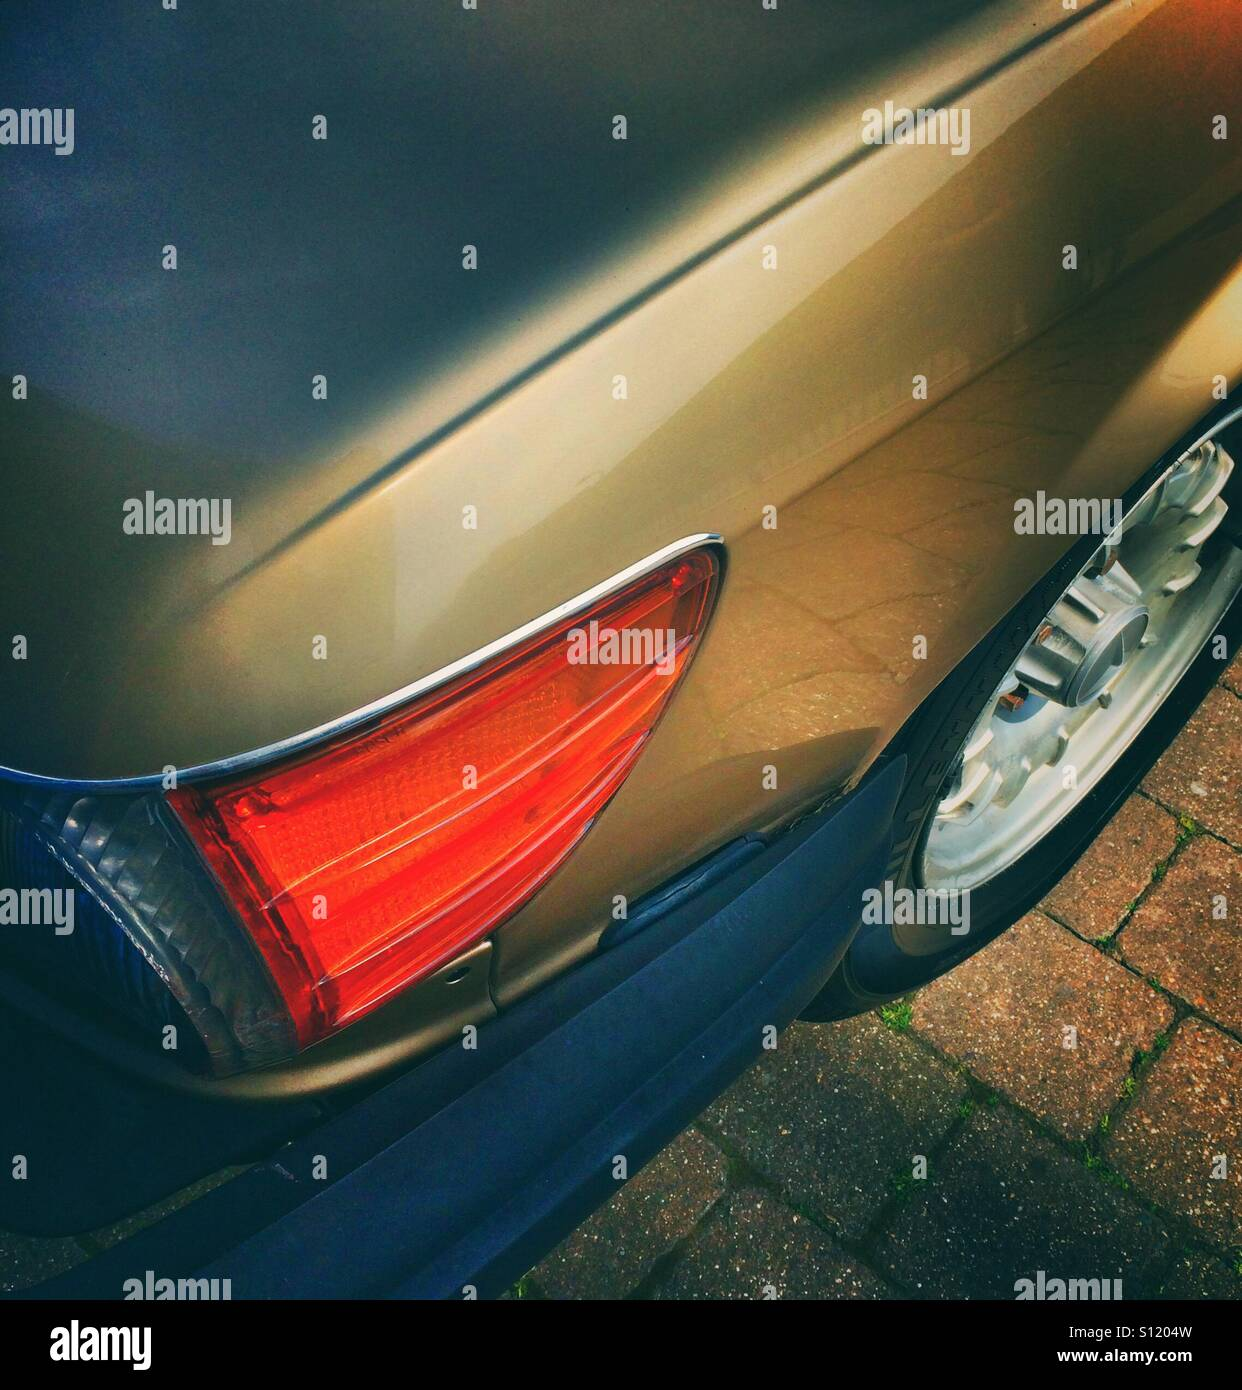 The rear light of a car - Stock Image